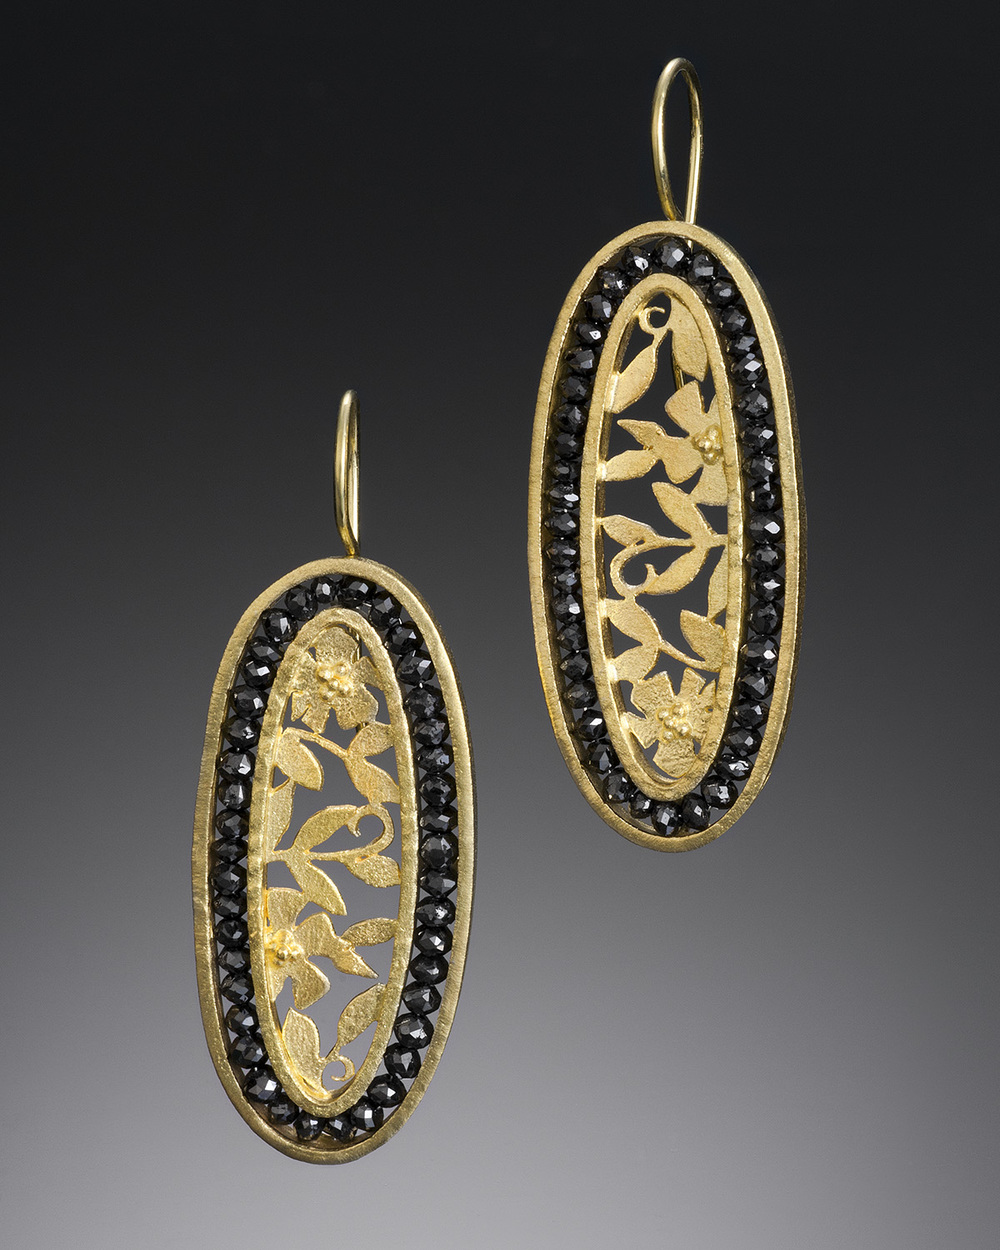 Edith-Armstrong-Oval-Earrings-CROP.jpg